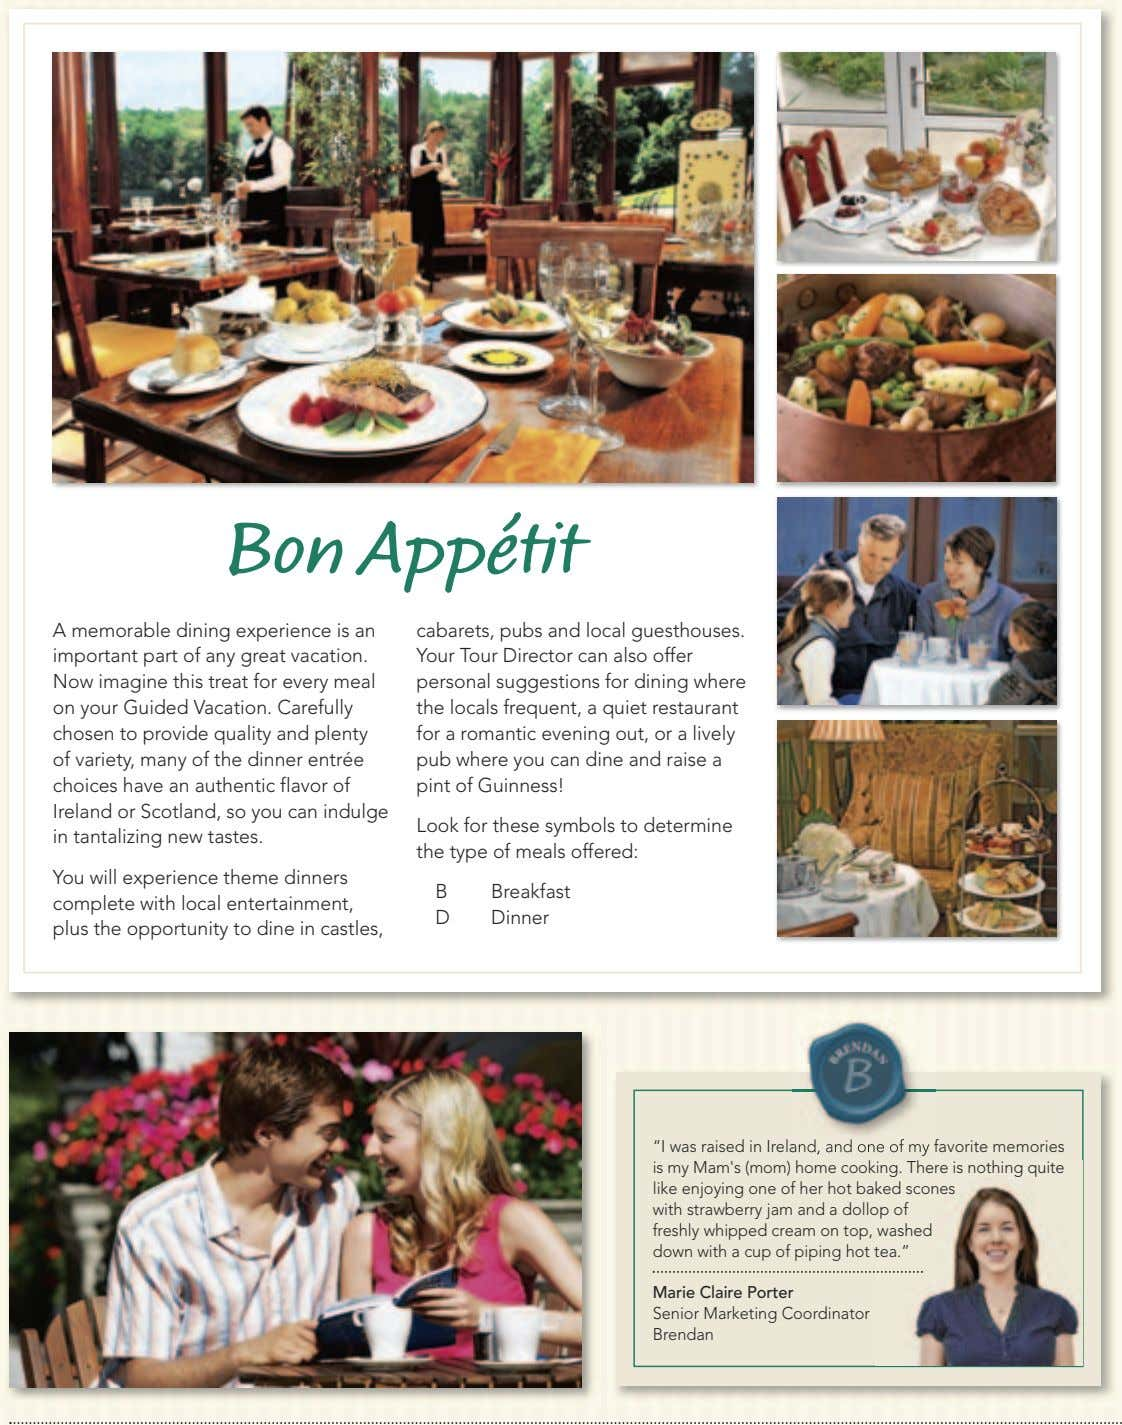 Bon Appétit A memorable dining experience is an important part of any great vacation. Now